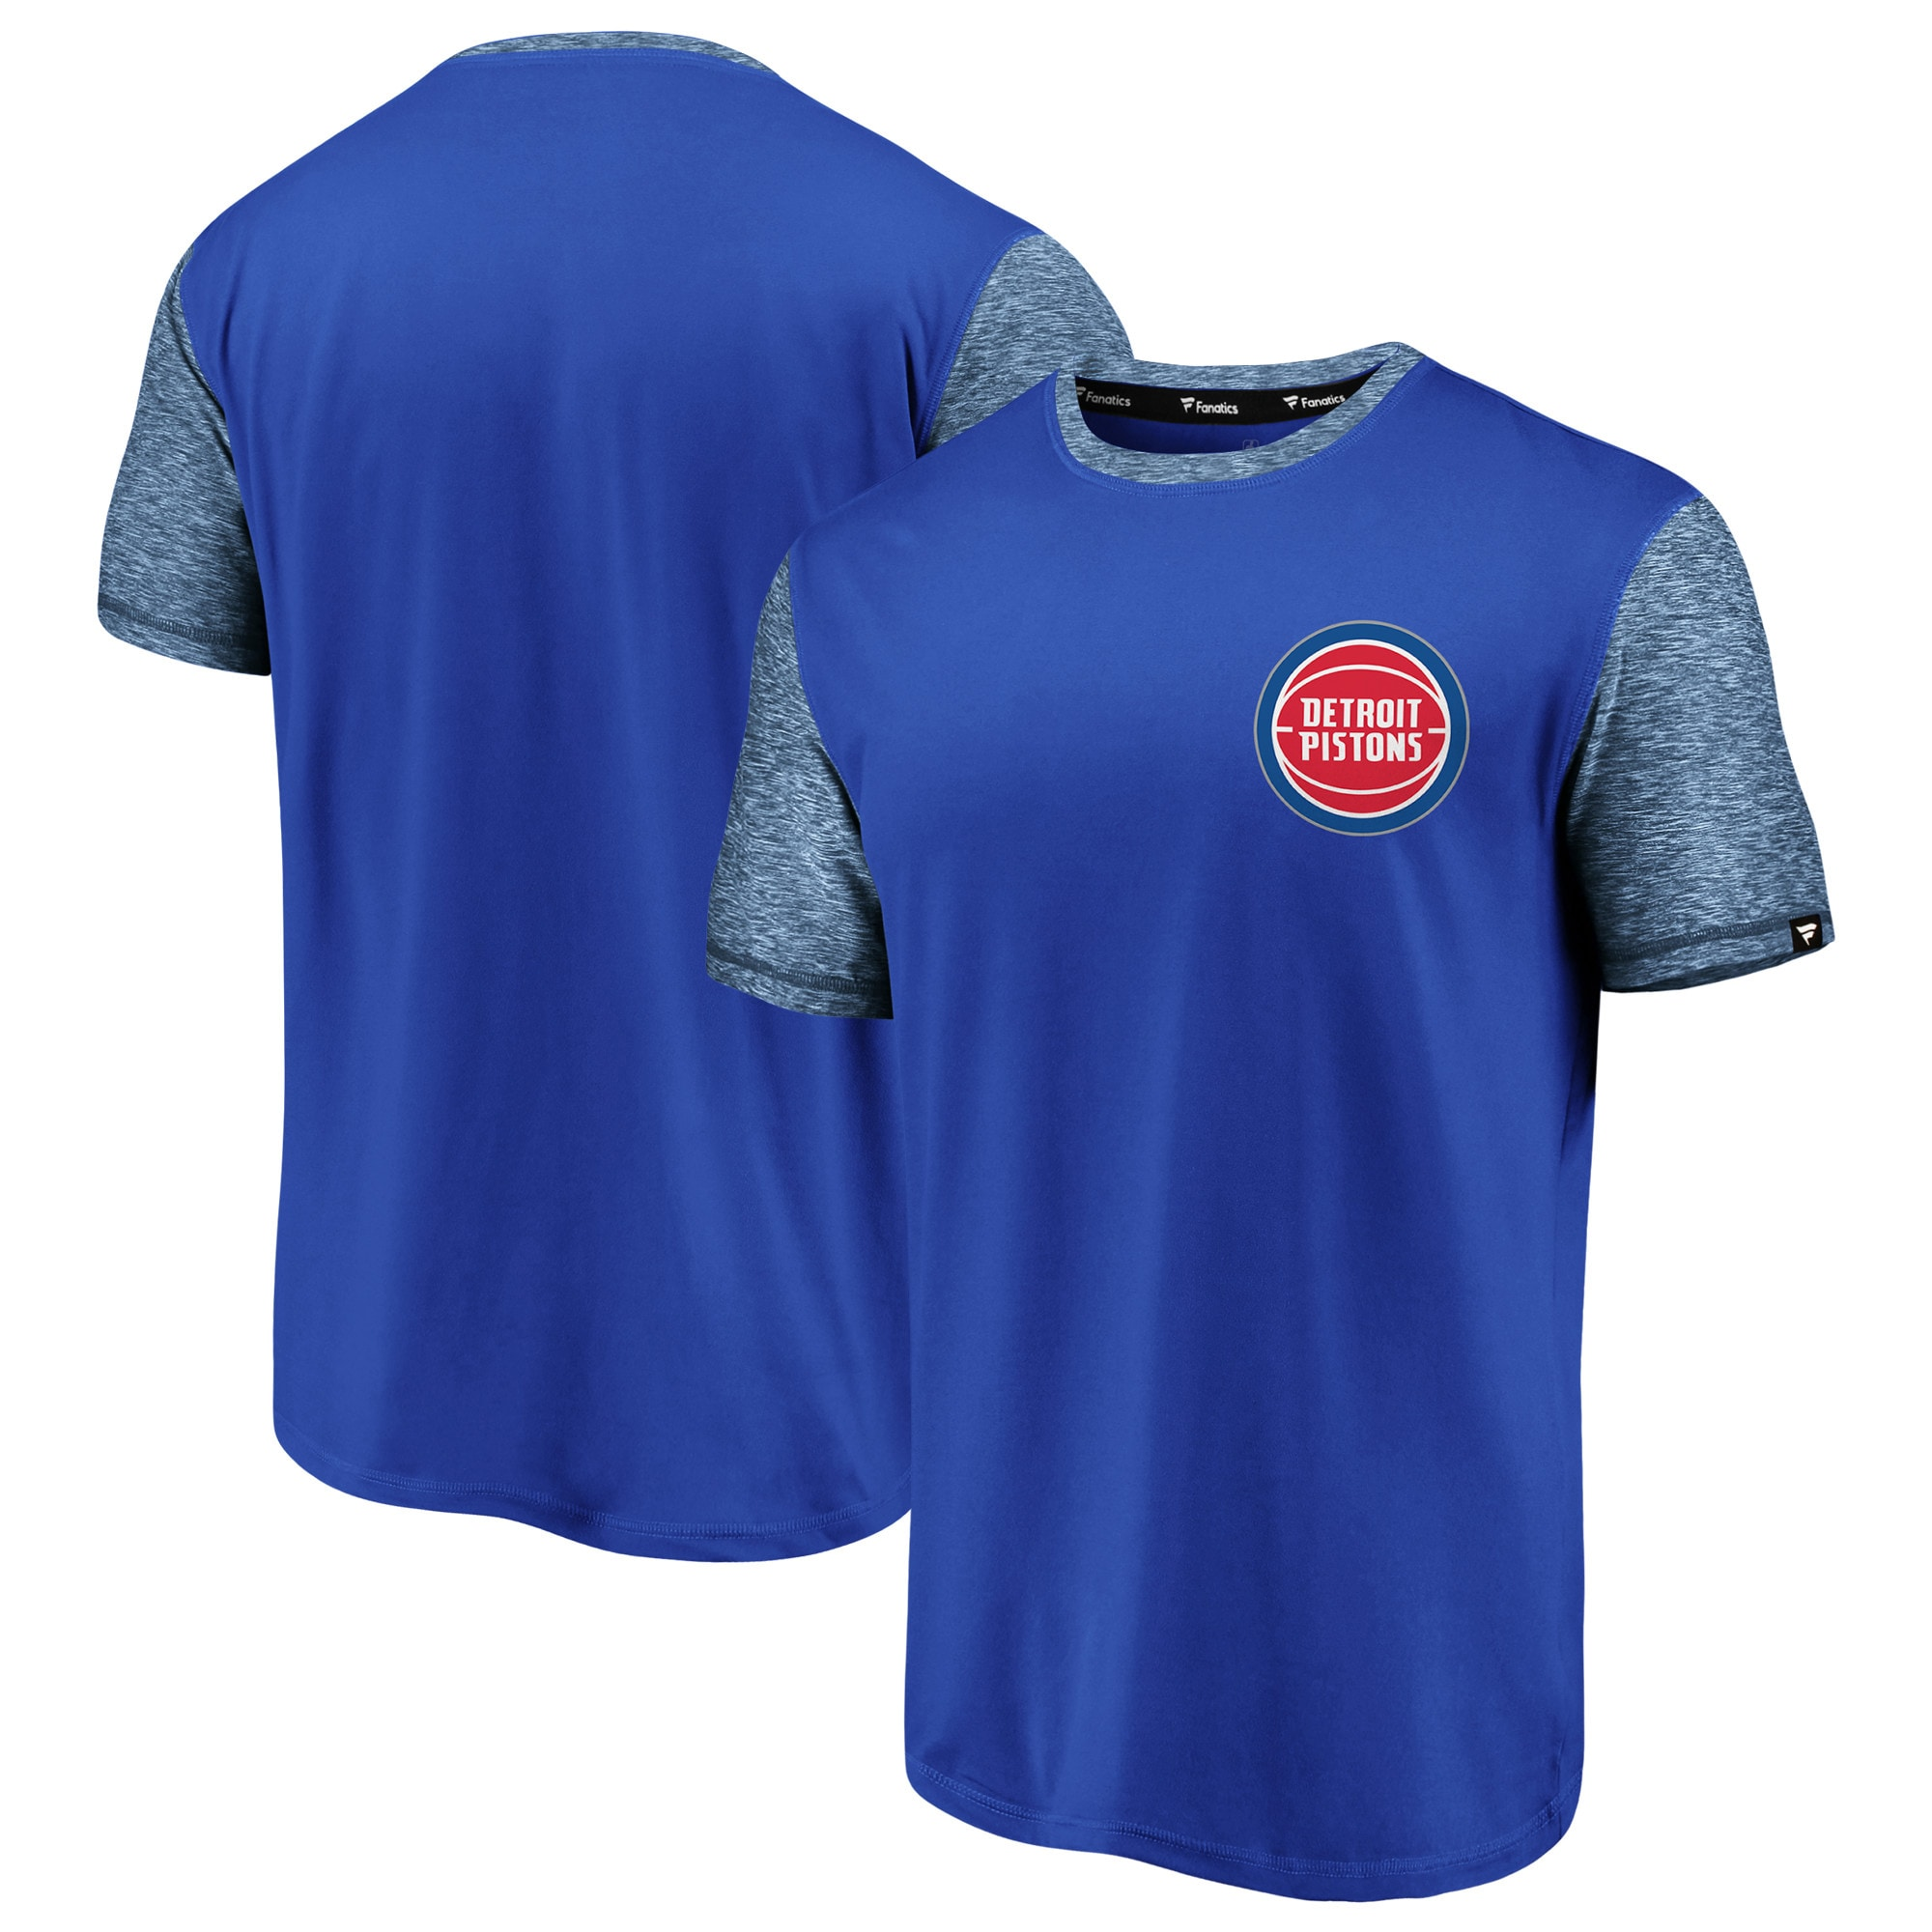 Detroit Pistons Fanatics Branded Made to Move Static Performance T-Shirt - Blue/Heathered Blue